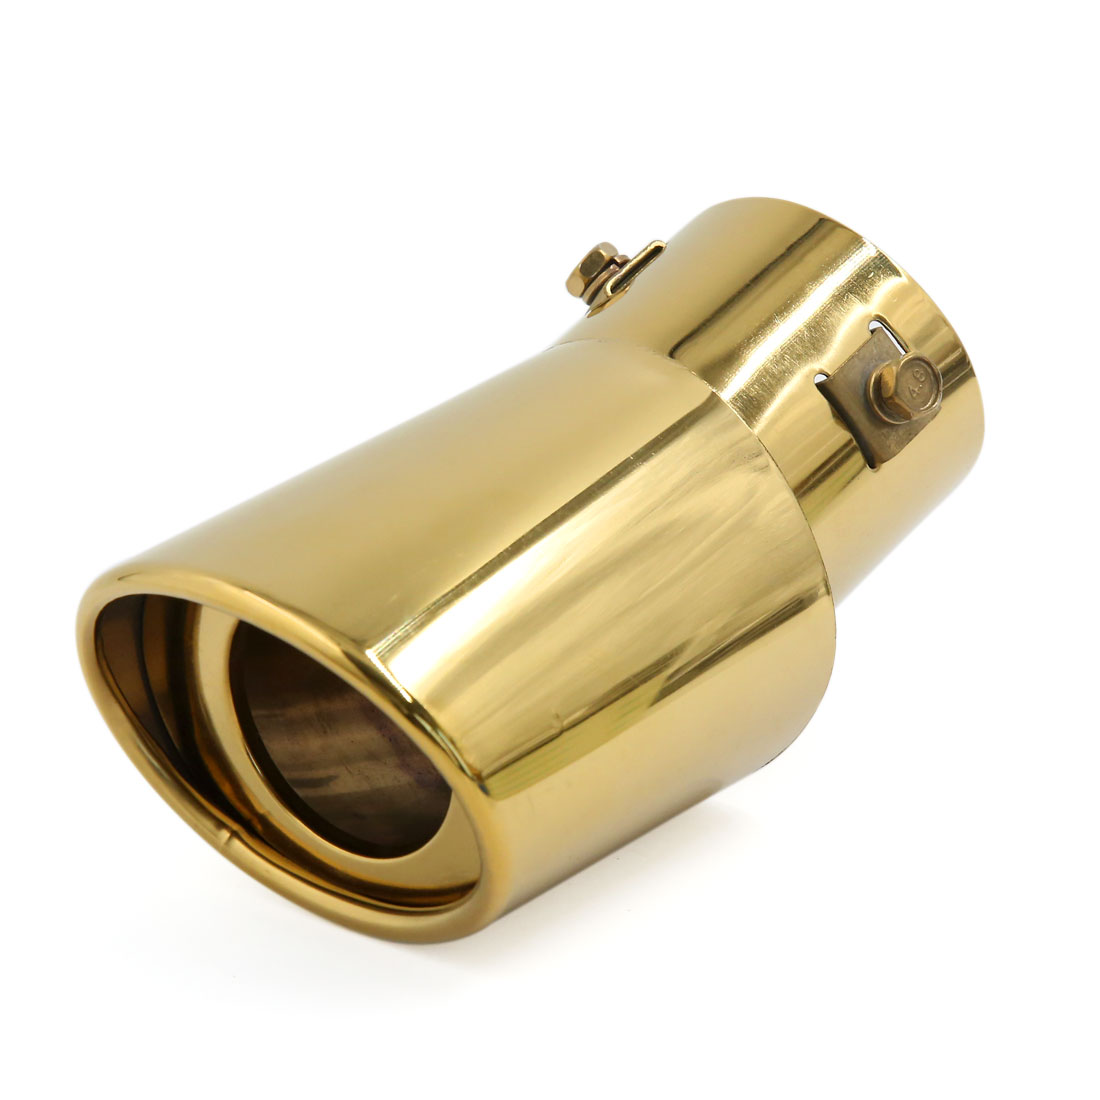 "Bent Angle Gold Tone Stainless Steel Car Rear Exhaust Pipe Tail Muffler Tip 2.4"" Inlet Diameter"